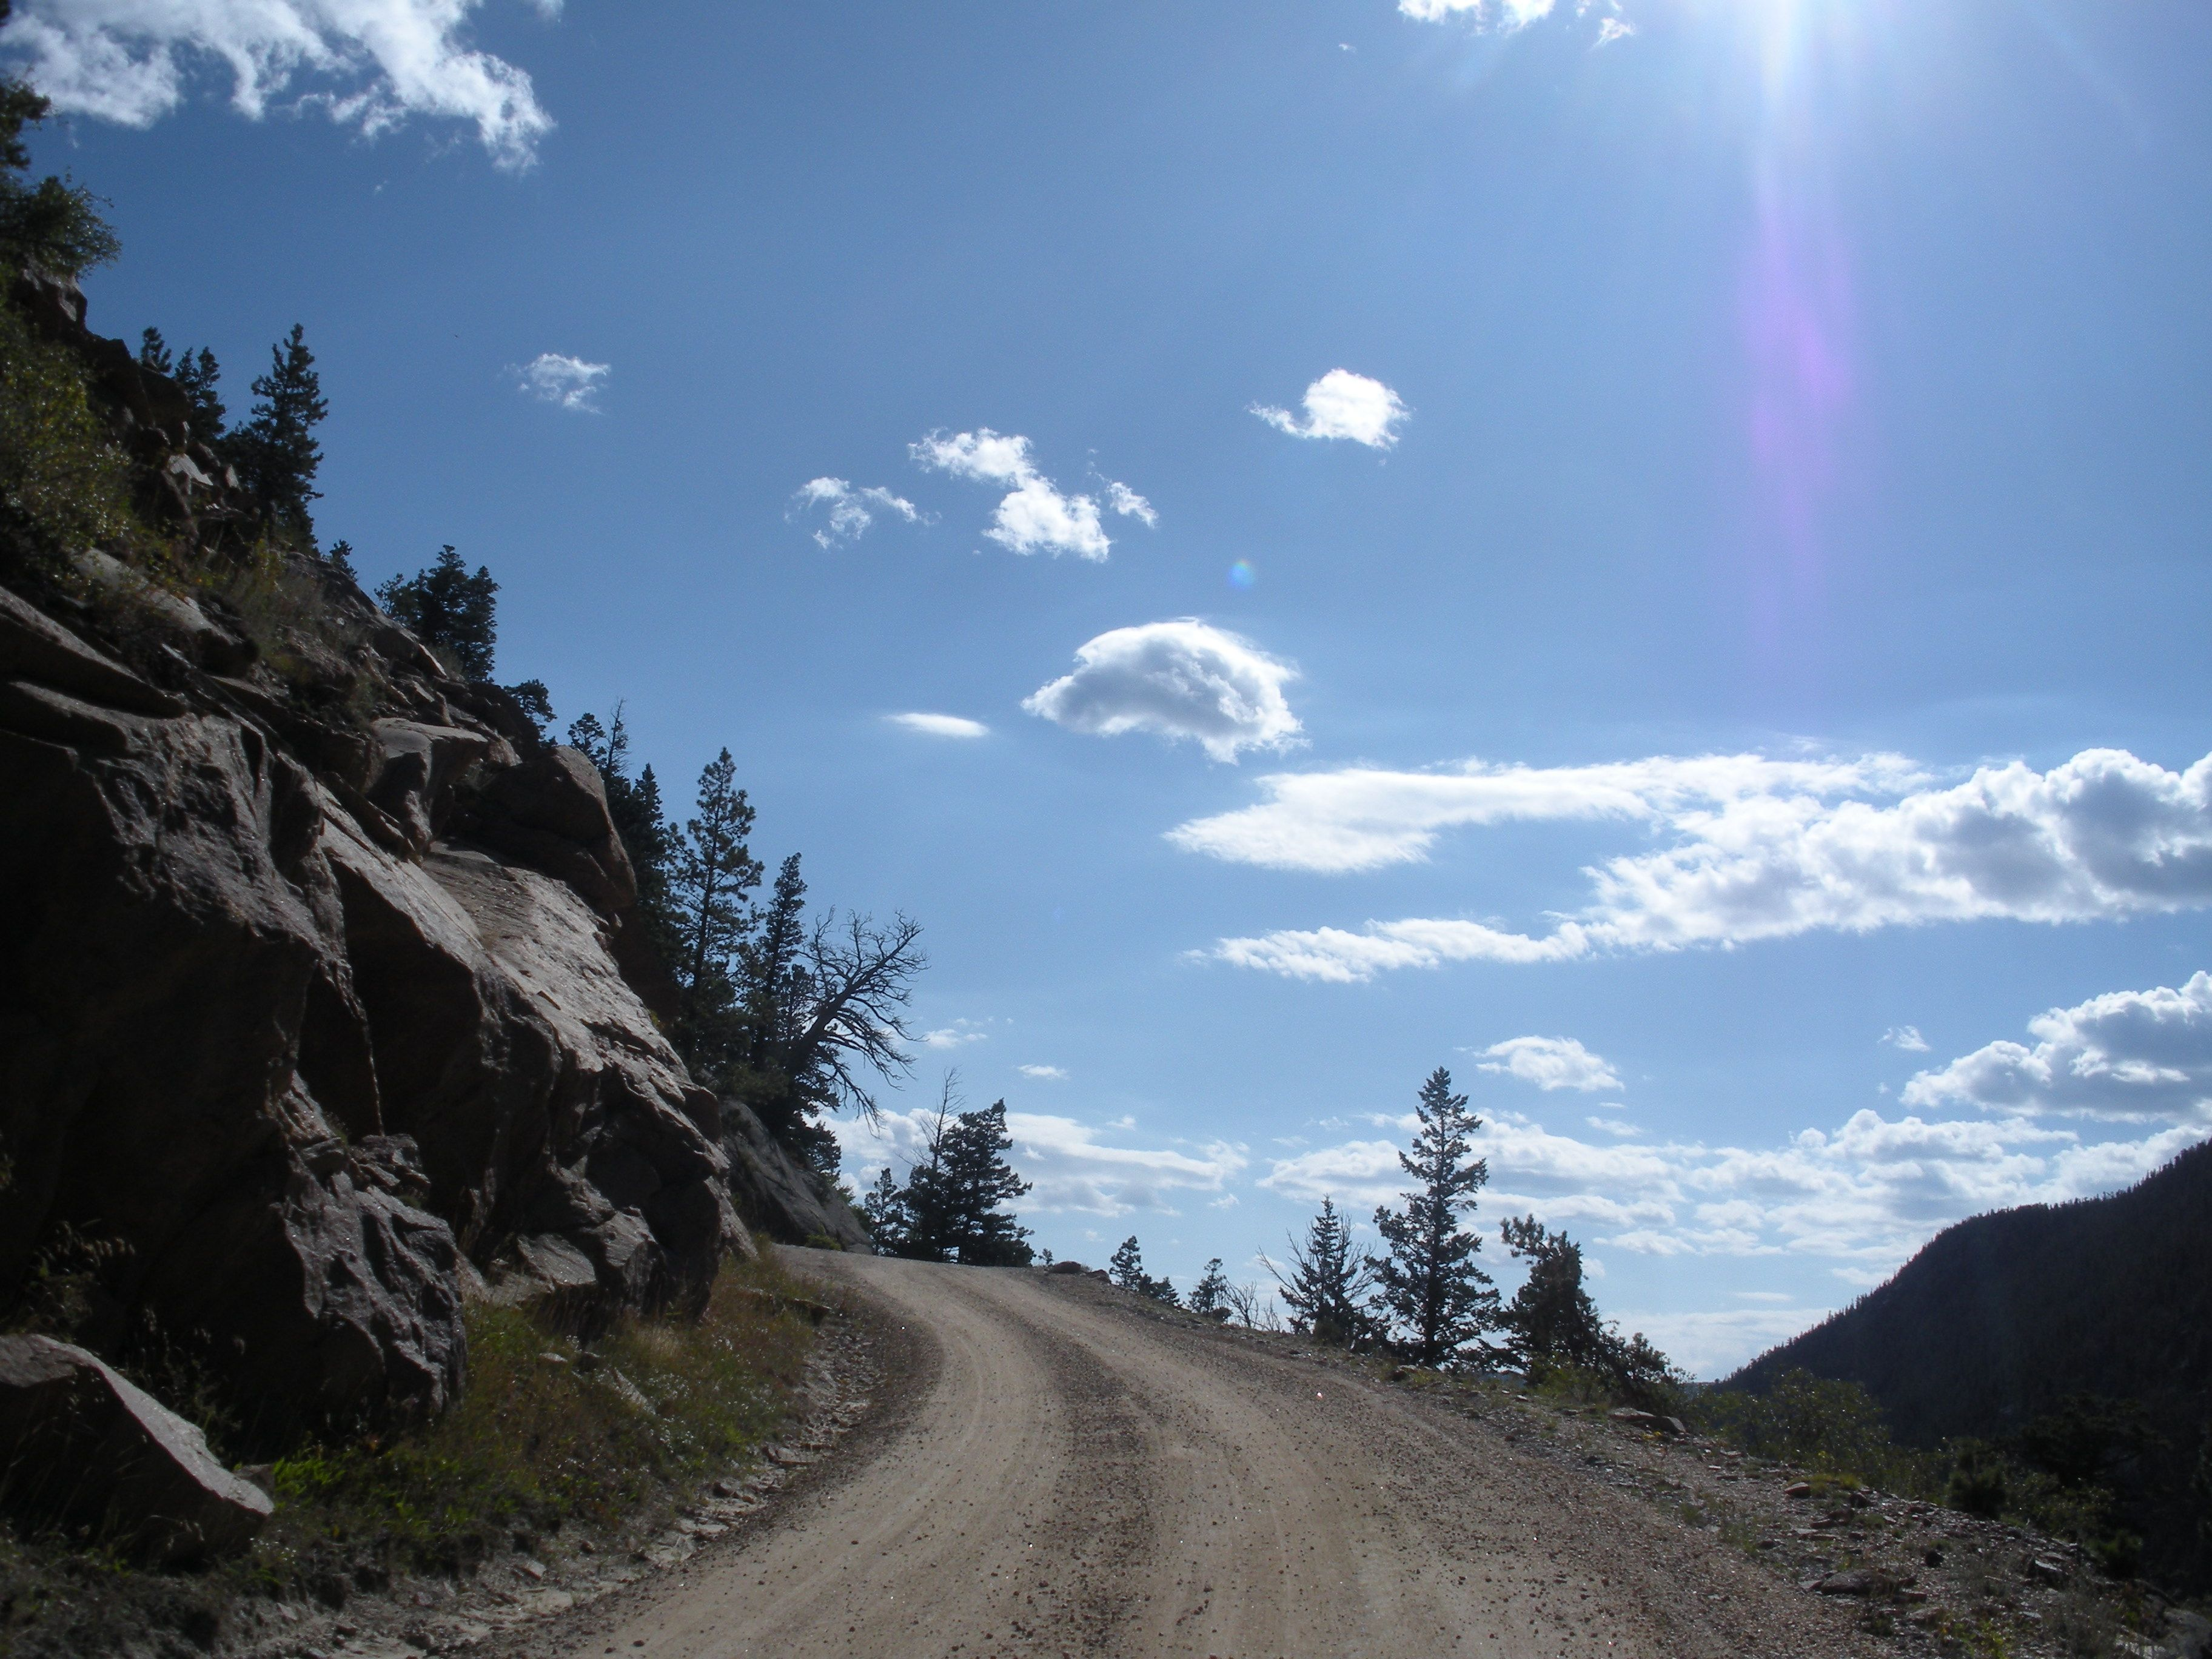 Driving up Old Fall River Road, a winding one-way dirt road